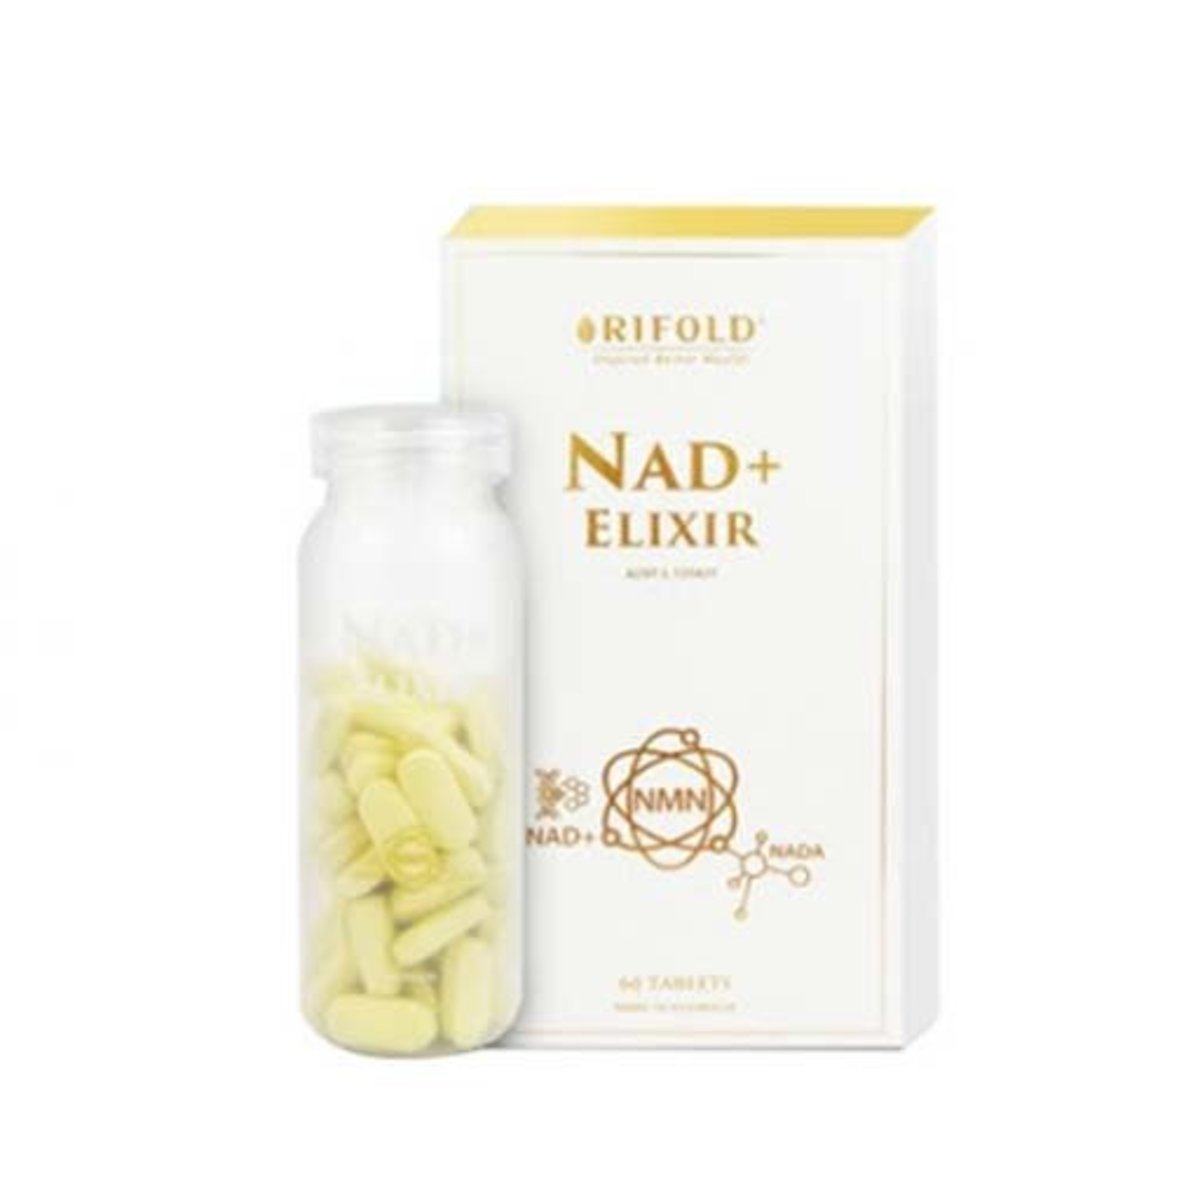 NAD+ ELIXIR[Authorized goods]